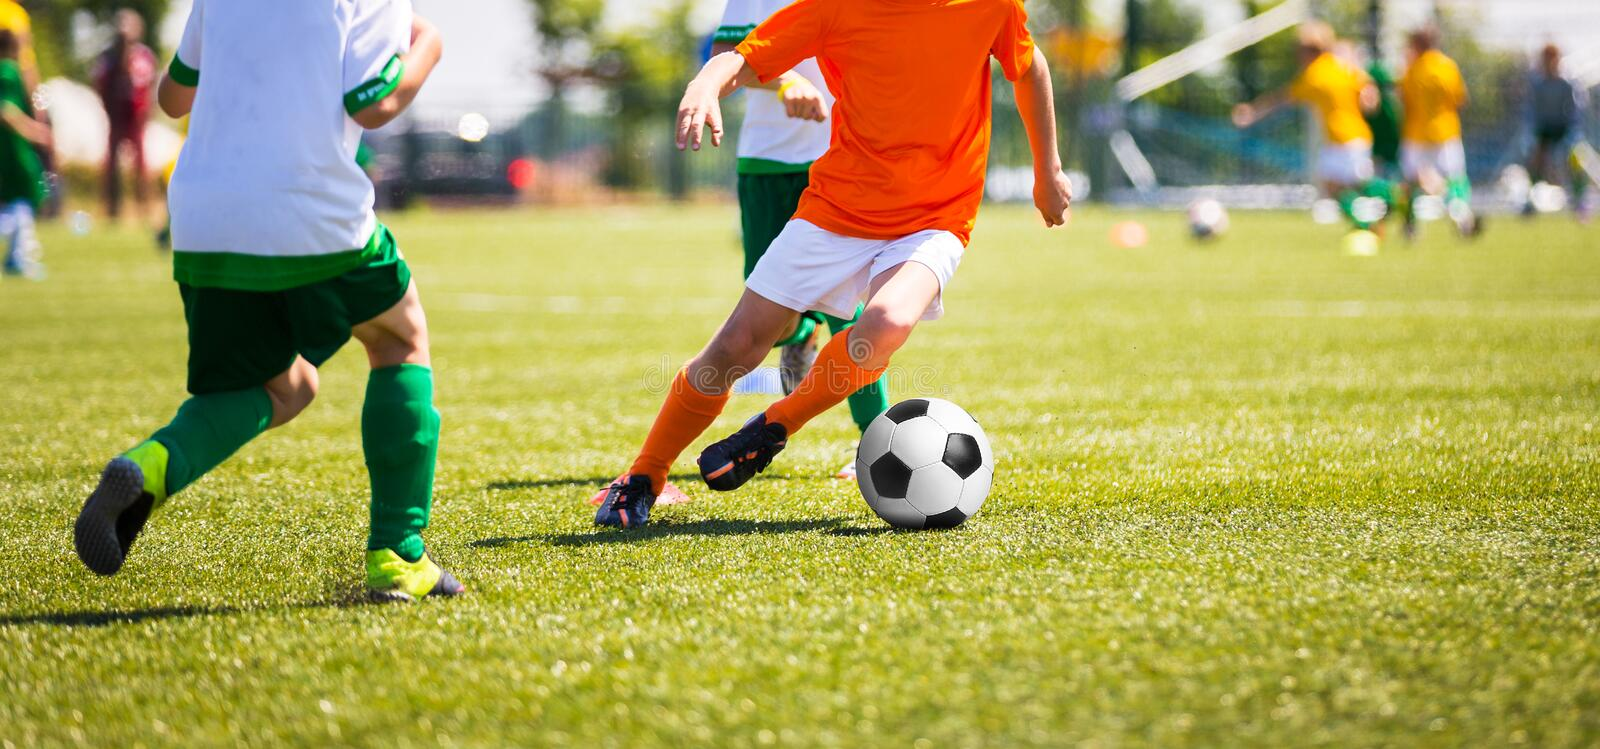 Boys Kicking Soccer Ball. Children Soccer Team. Running soccer players. Boys Kicking Soccer Ball. Children Soccer Team. Kids Running with Ball on Football Pitch stock image